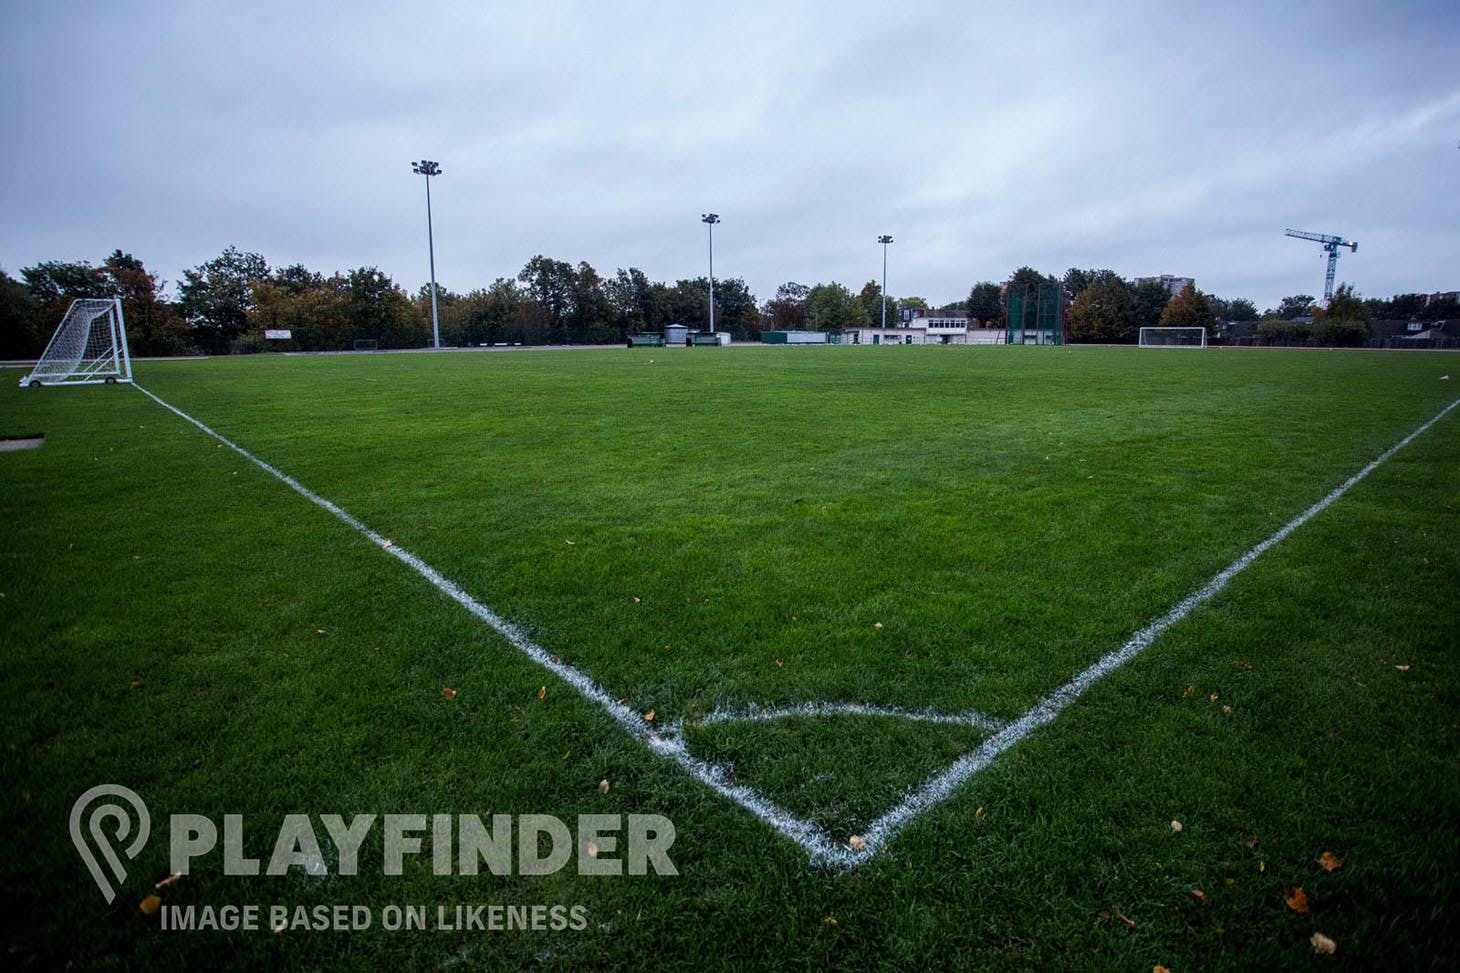 Braypool Recreation Ground 11 a side | Grass football pitch